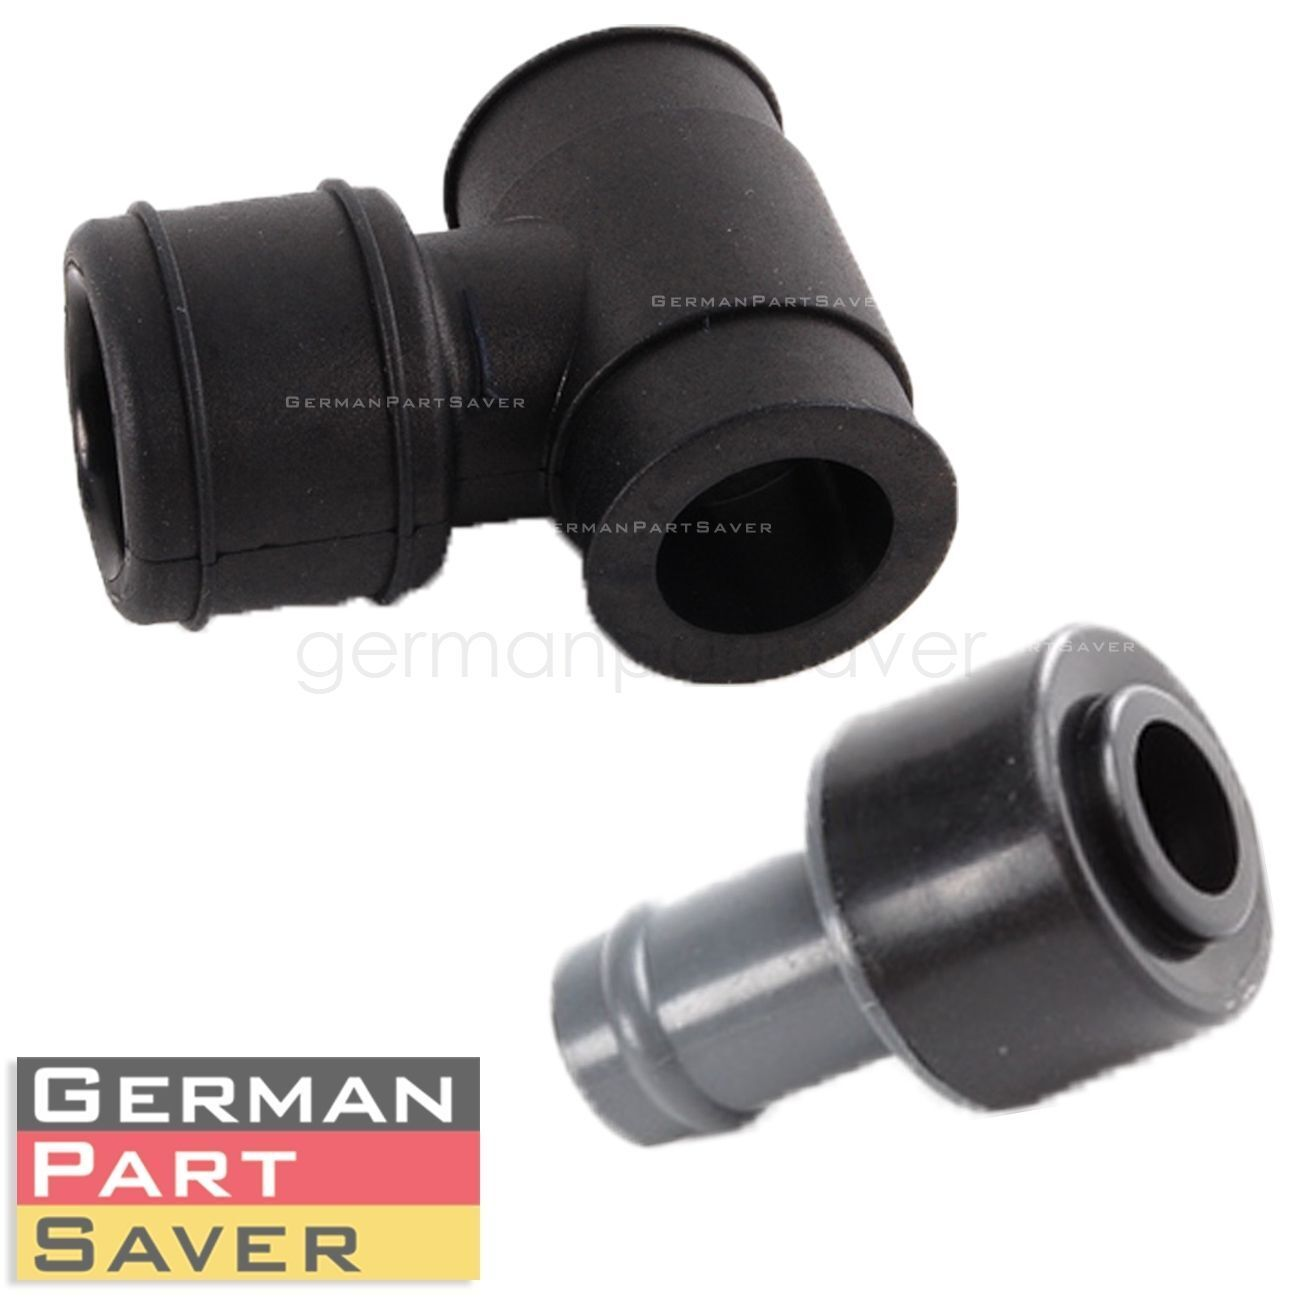 New 3 Way Breather Hose Connector Pcv Bleeder Valve Fits Vw Passat 2000 Audi A4 1 Of 1free Shipping See More